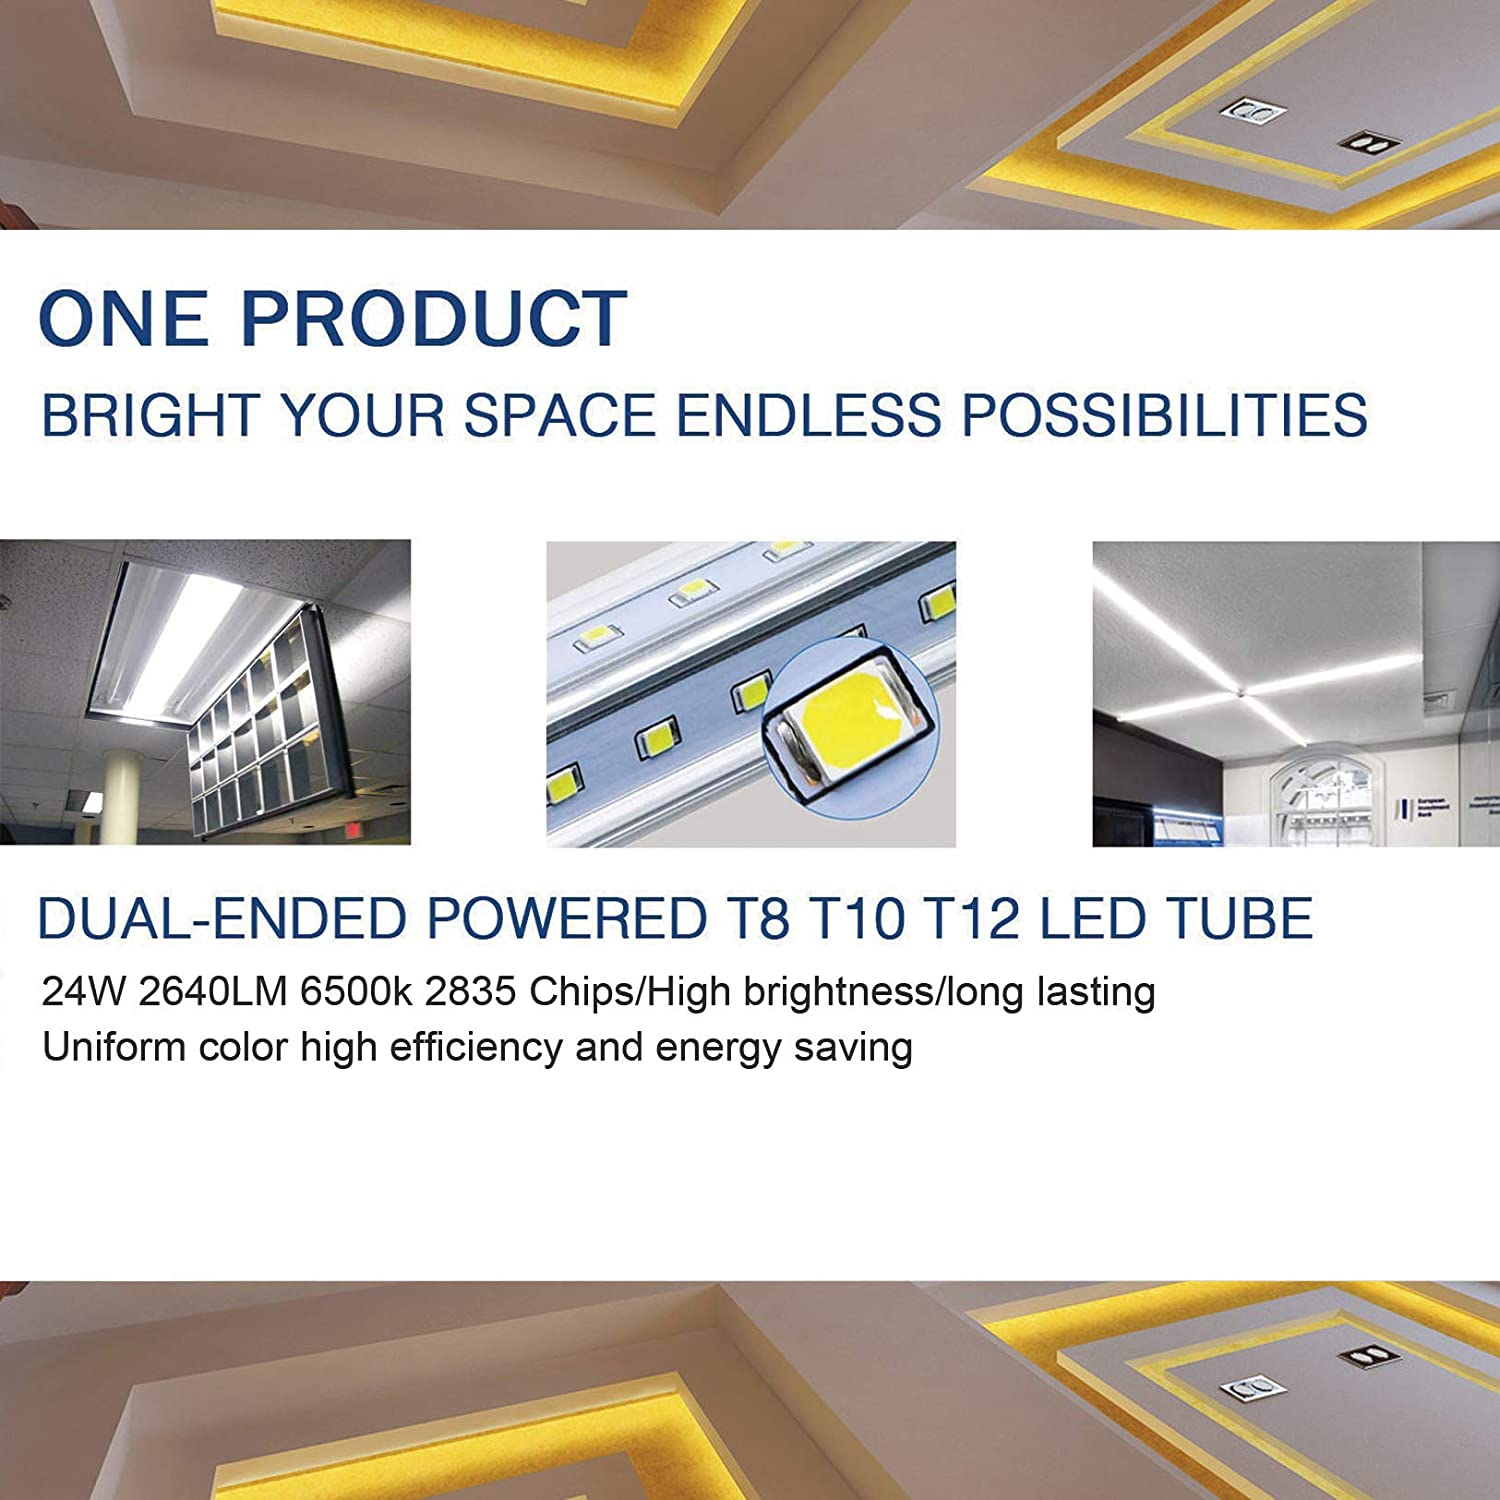 6-Pack 8FT 60W T8 LED Tube Light Daylight White 6500k,360/°Rotatable R17D//HO Caps V-Shaped Double Row LEDs Clear Cover 8 Foot Bulbs to Replace T10 T12 Fluorescent Light,Dual-Ended Power ETL Listed